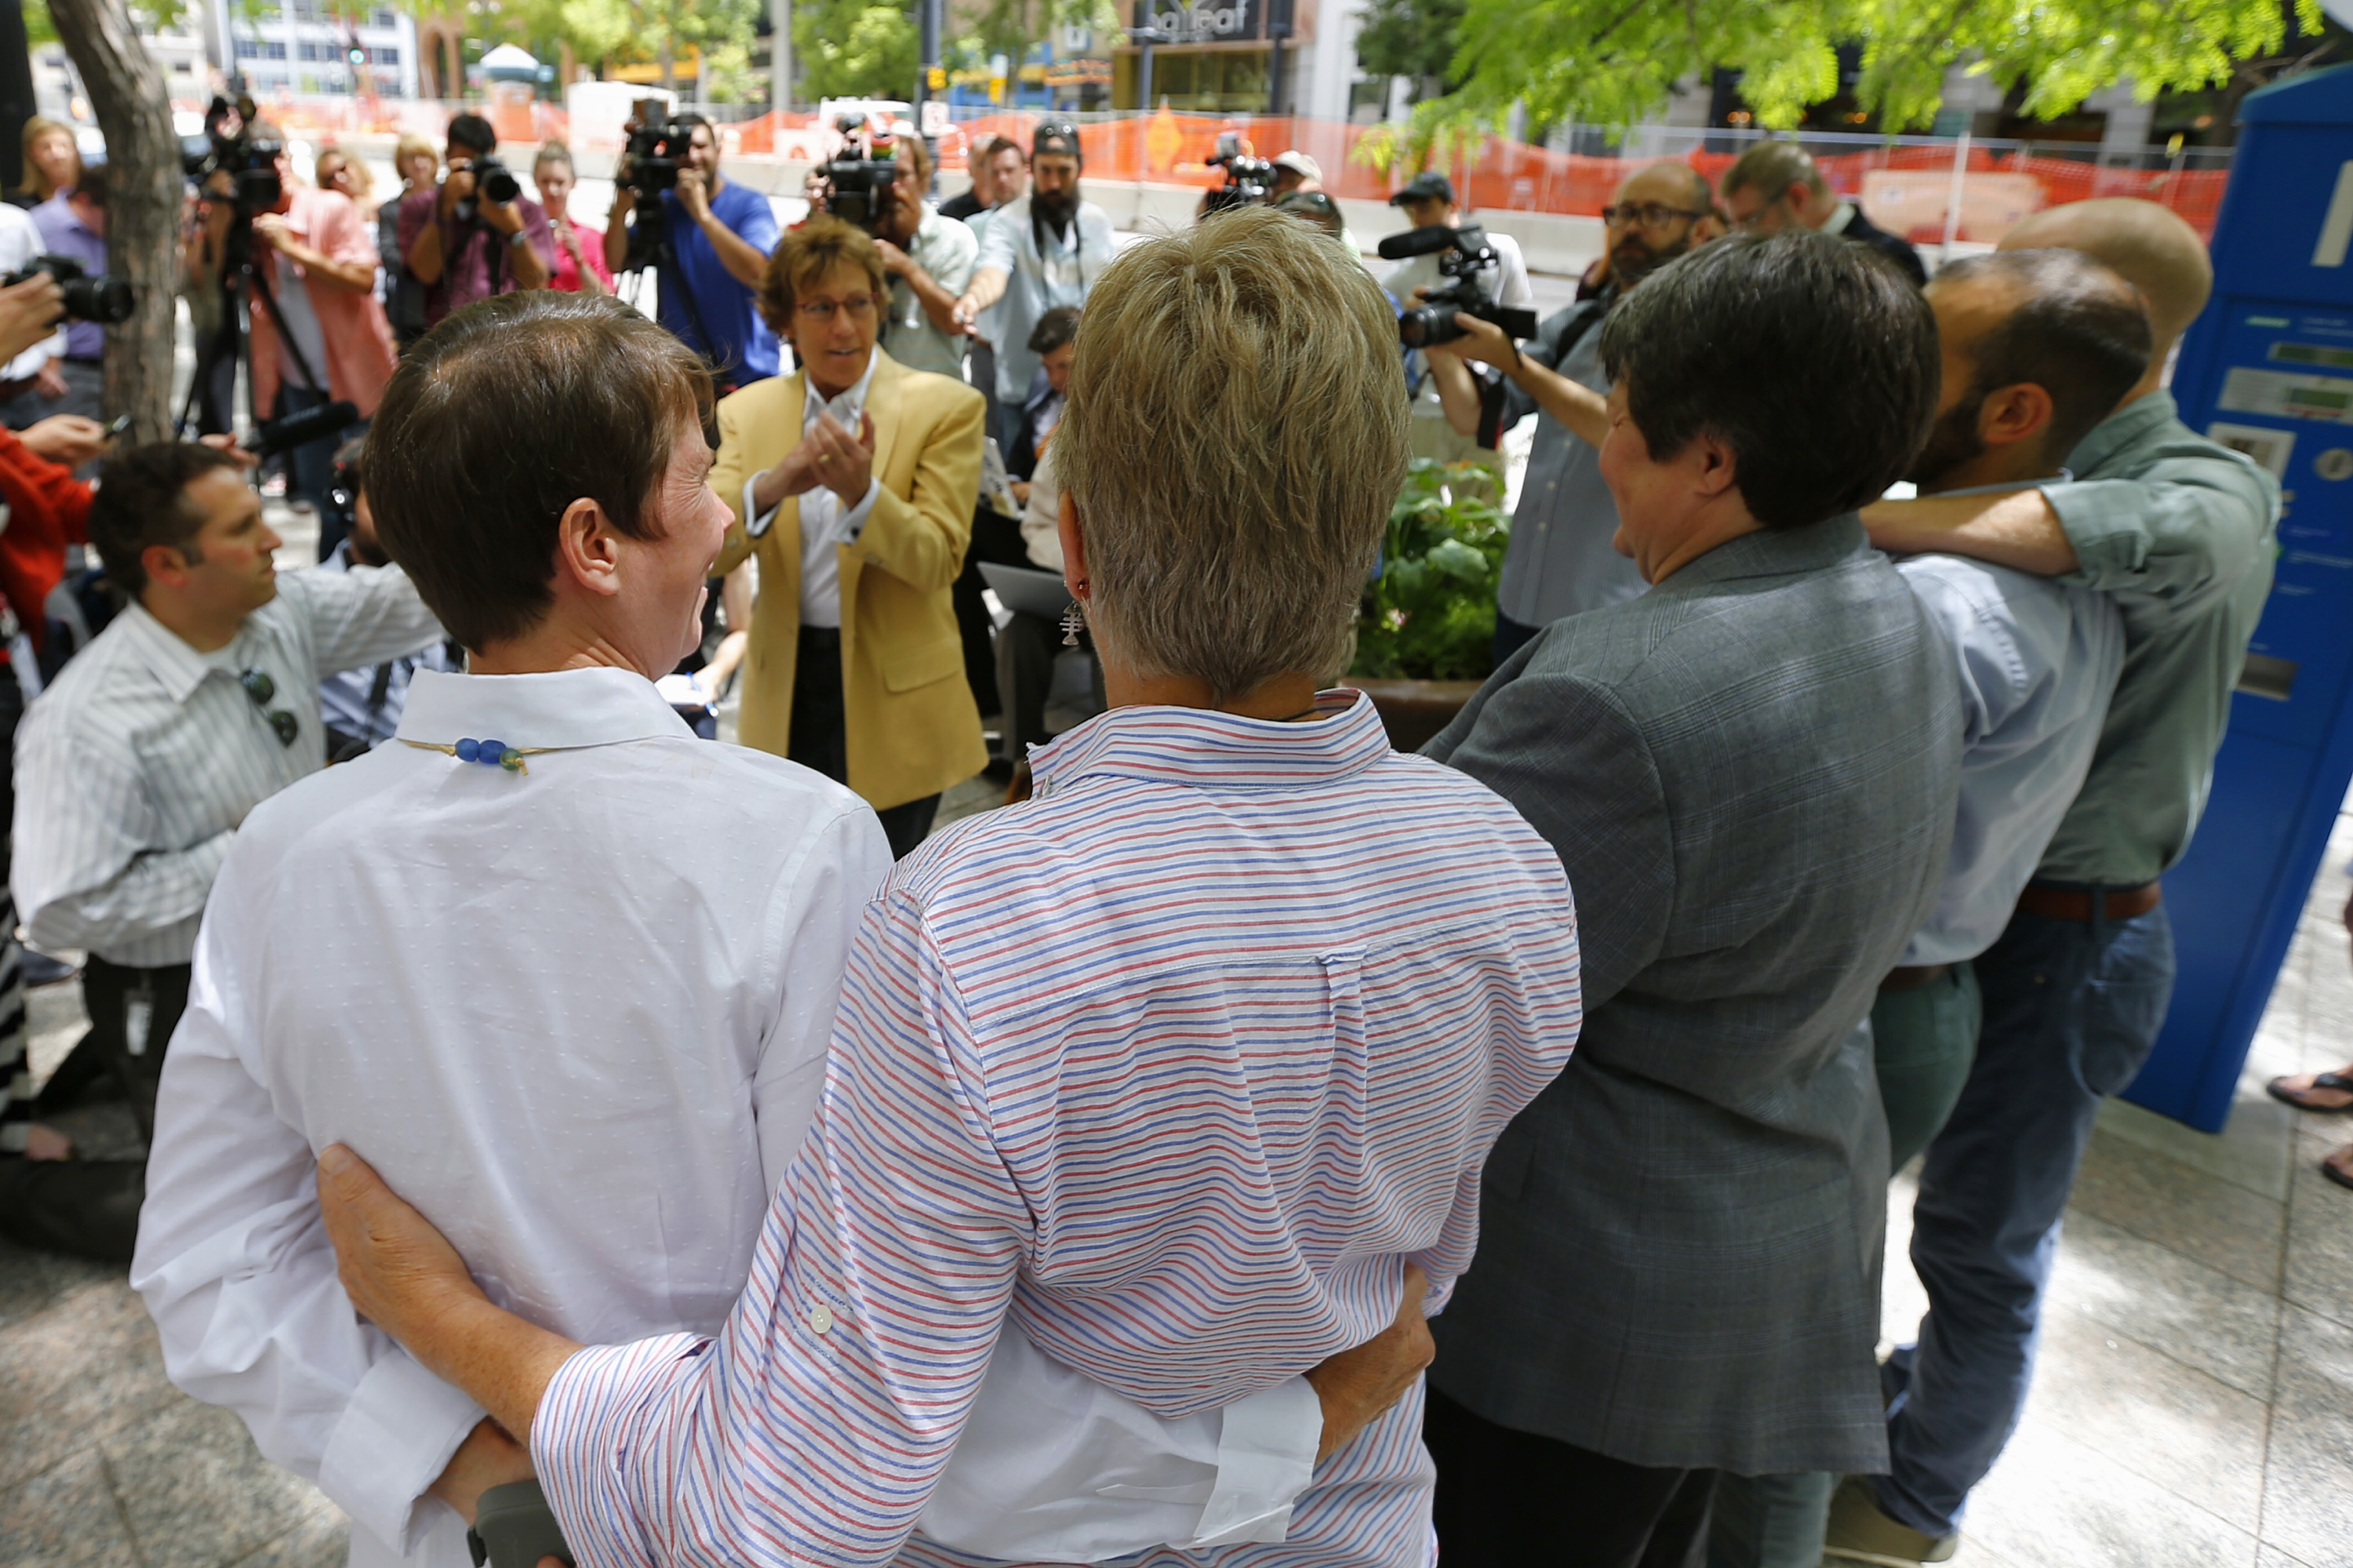 Peggy Tomsic, (C) attorney for three same-sex couples, claps in celebration after the 10th Circuit Court in Denver rejected a same-sex marriage ban in Utah on June 25, 2014 in Salt Lake City, Utah.